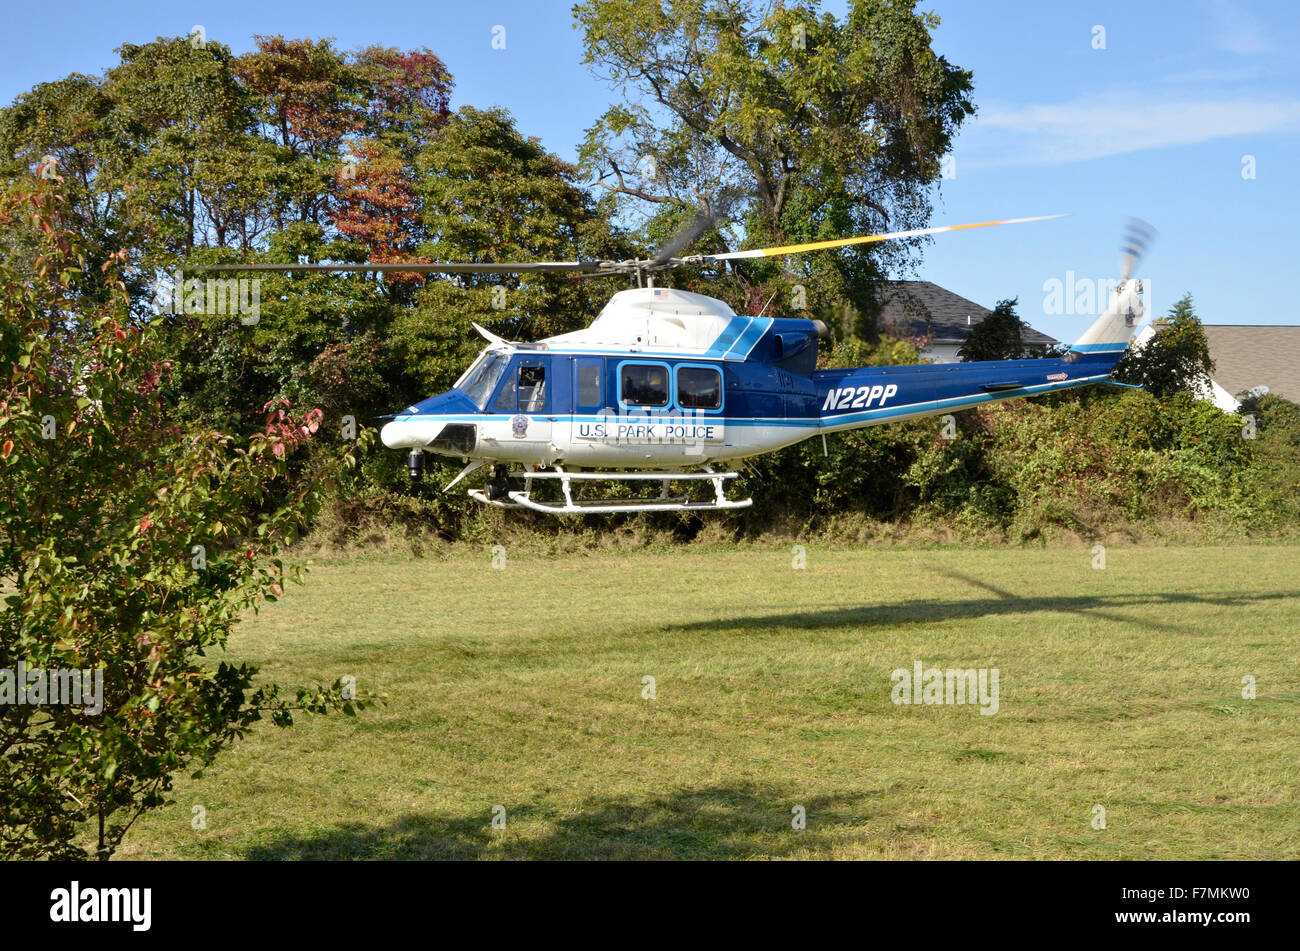 United Staes Park Police medivac helicopter lands in a field in Glendale, Maryland - Stock Image